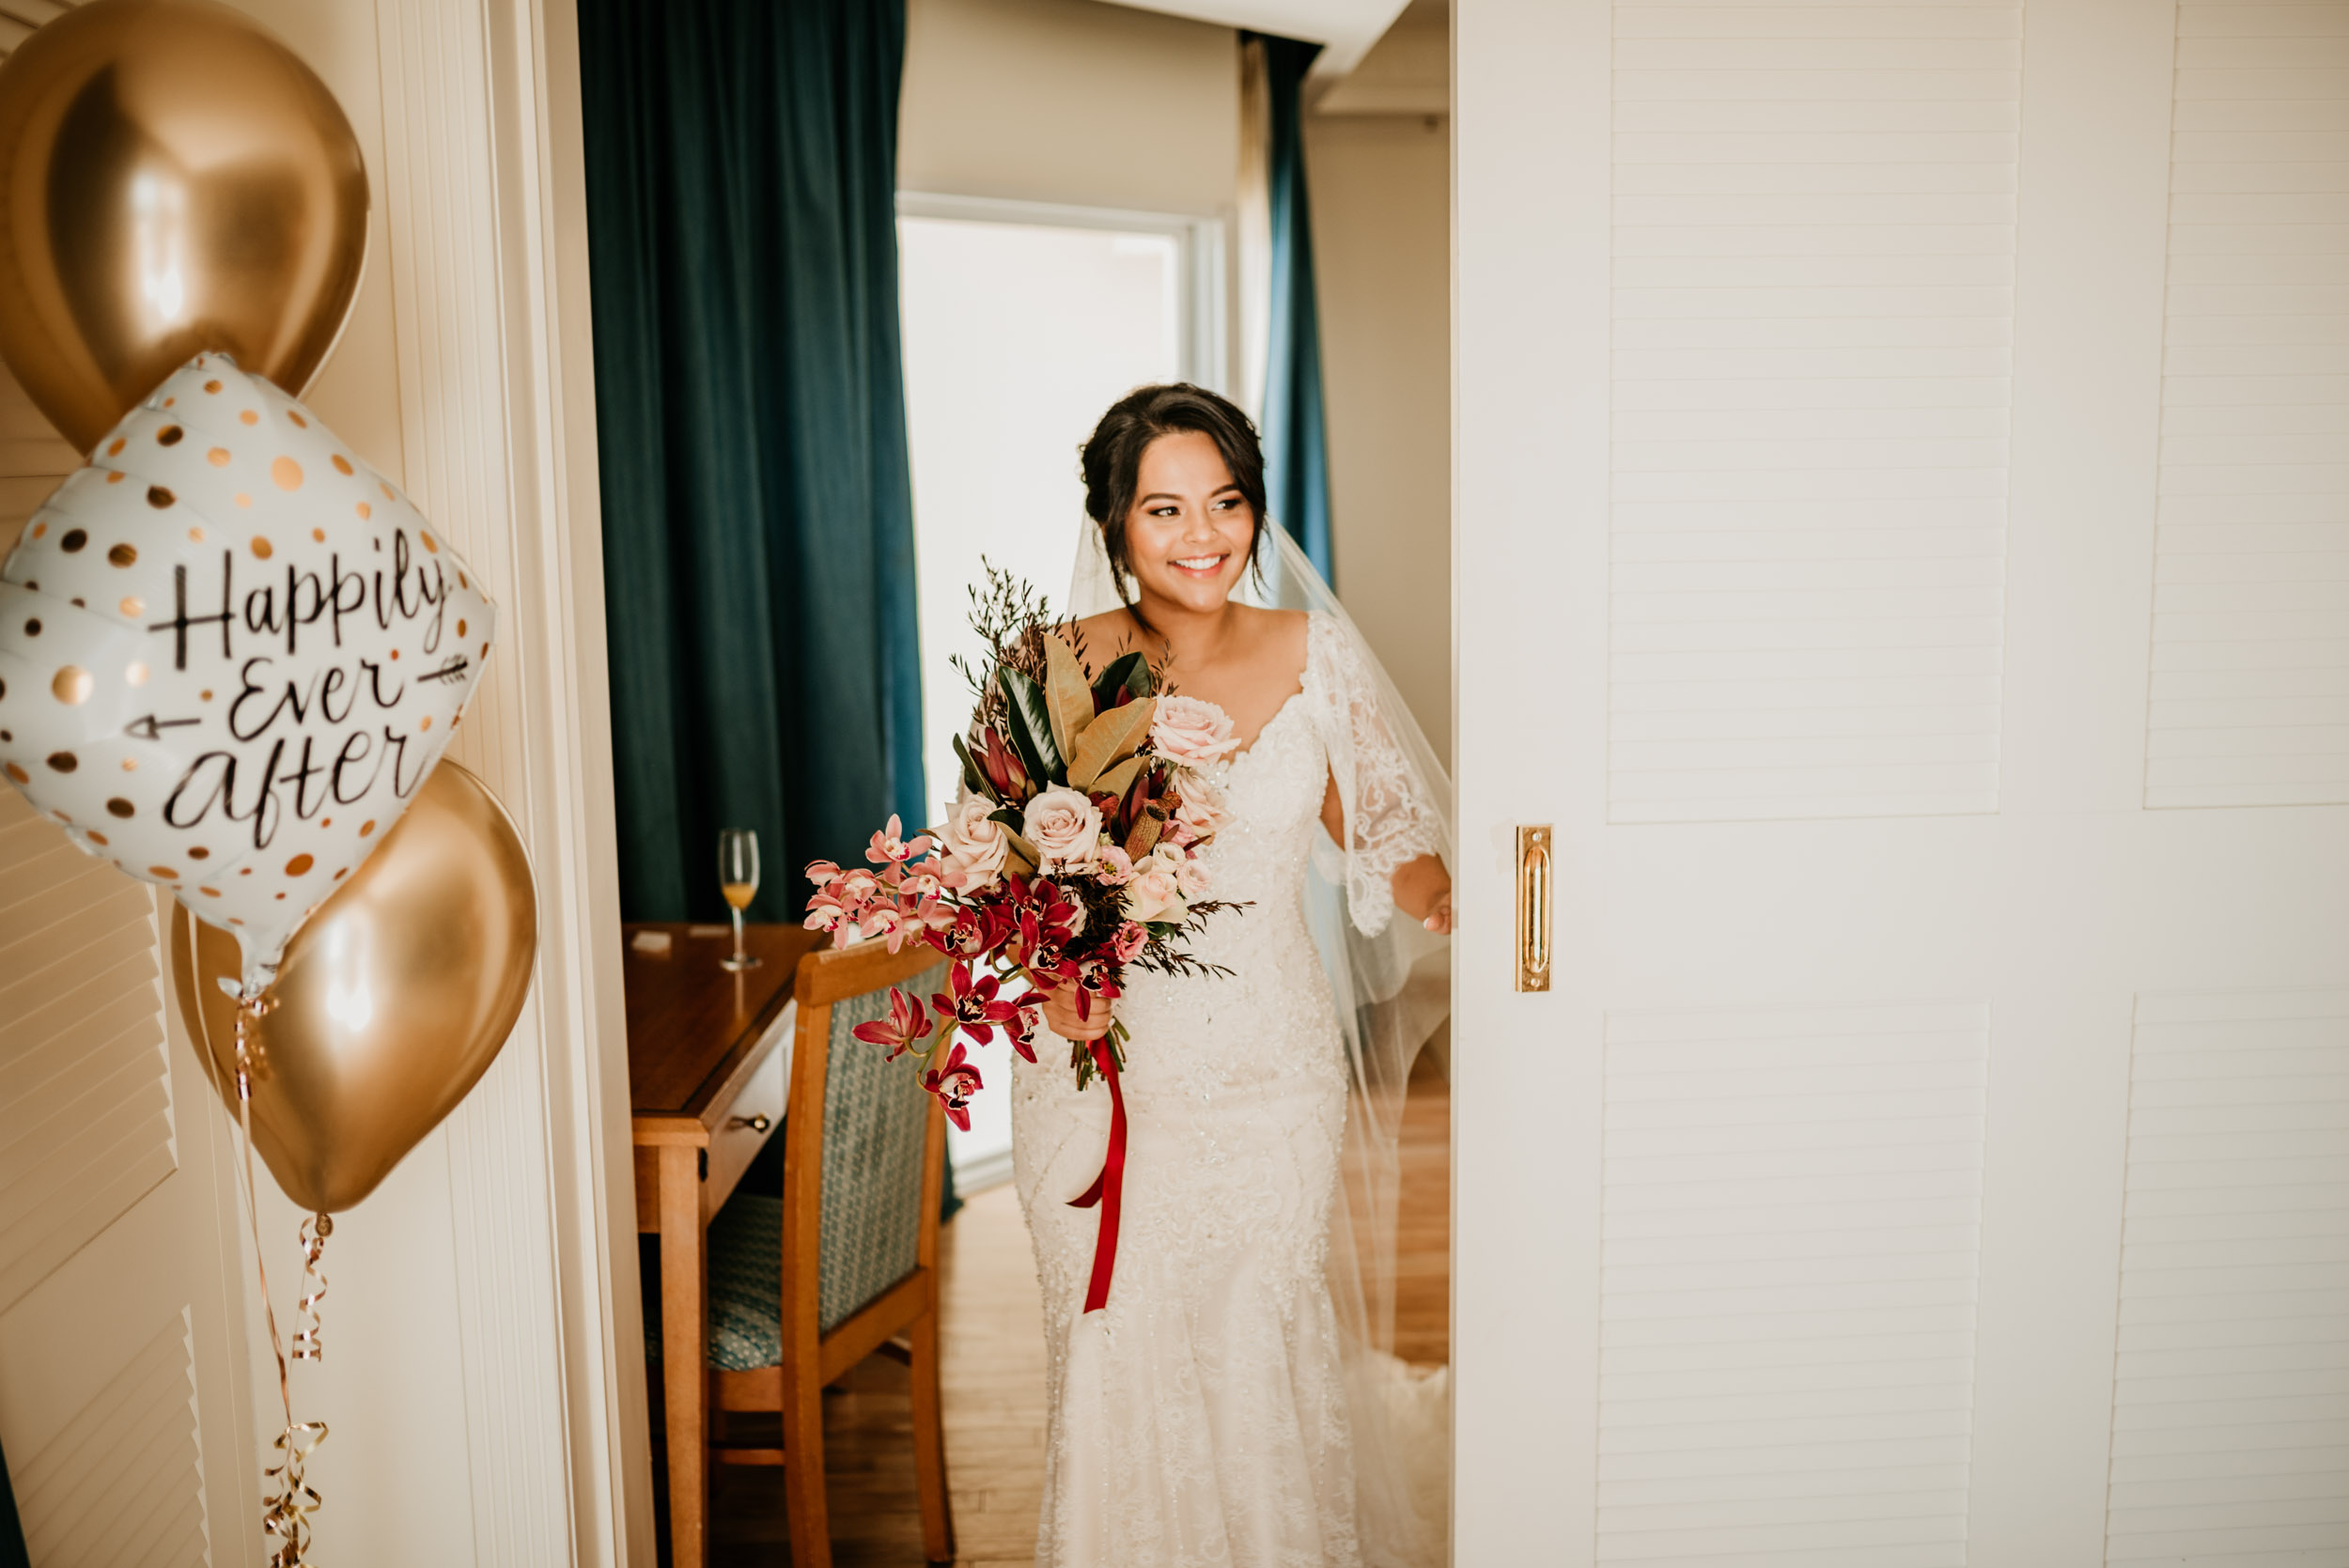 The Raw Photographer - Cairns Wedding Photographer - Palm Cove Ceremony - Pullman Reception - Dress White House Boutique-17.jpg